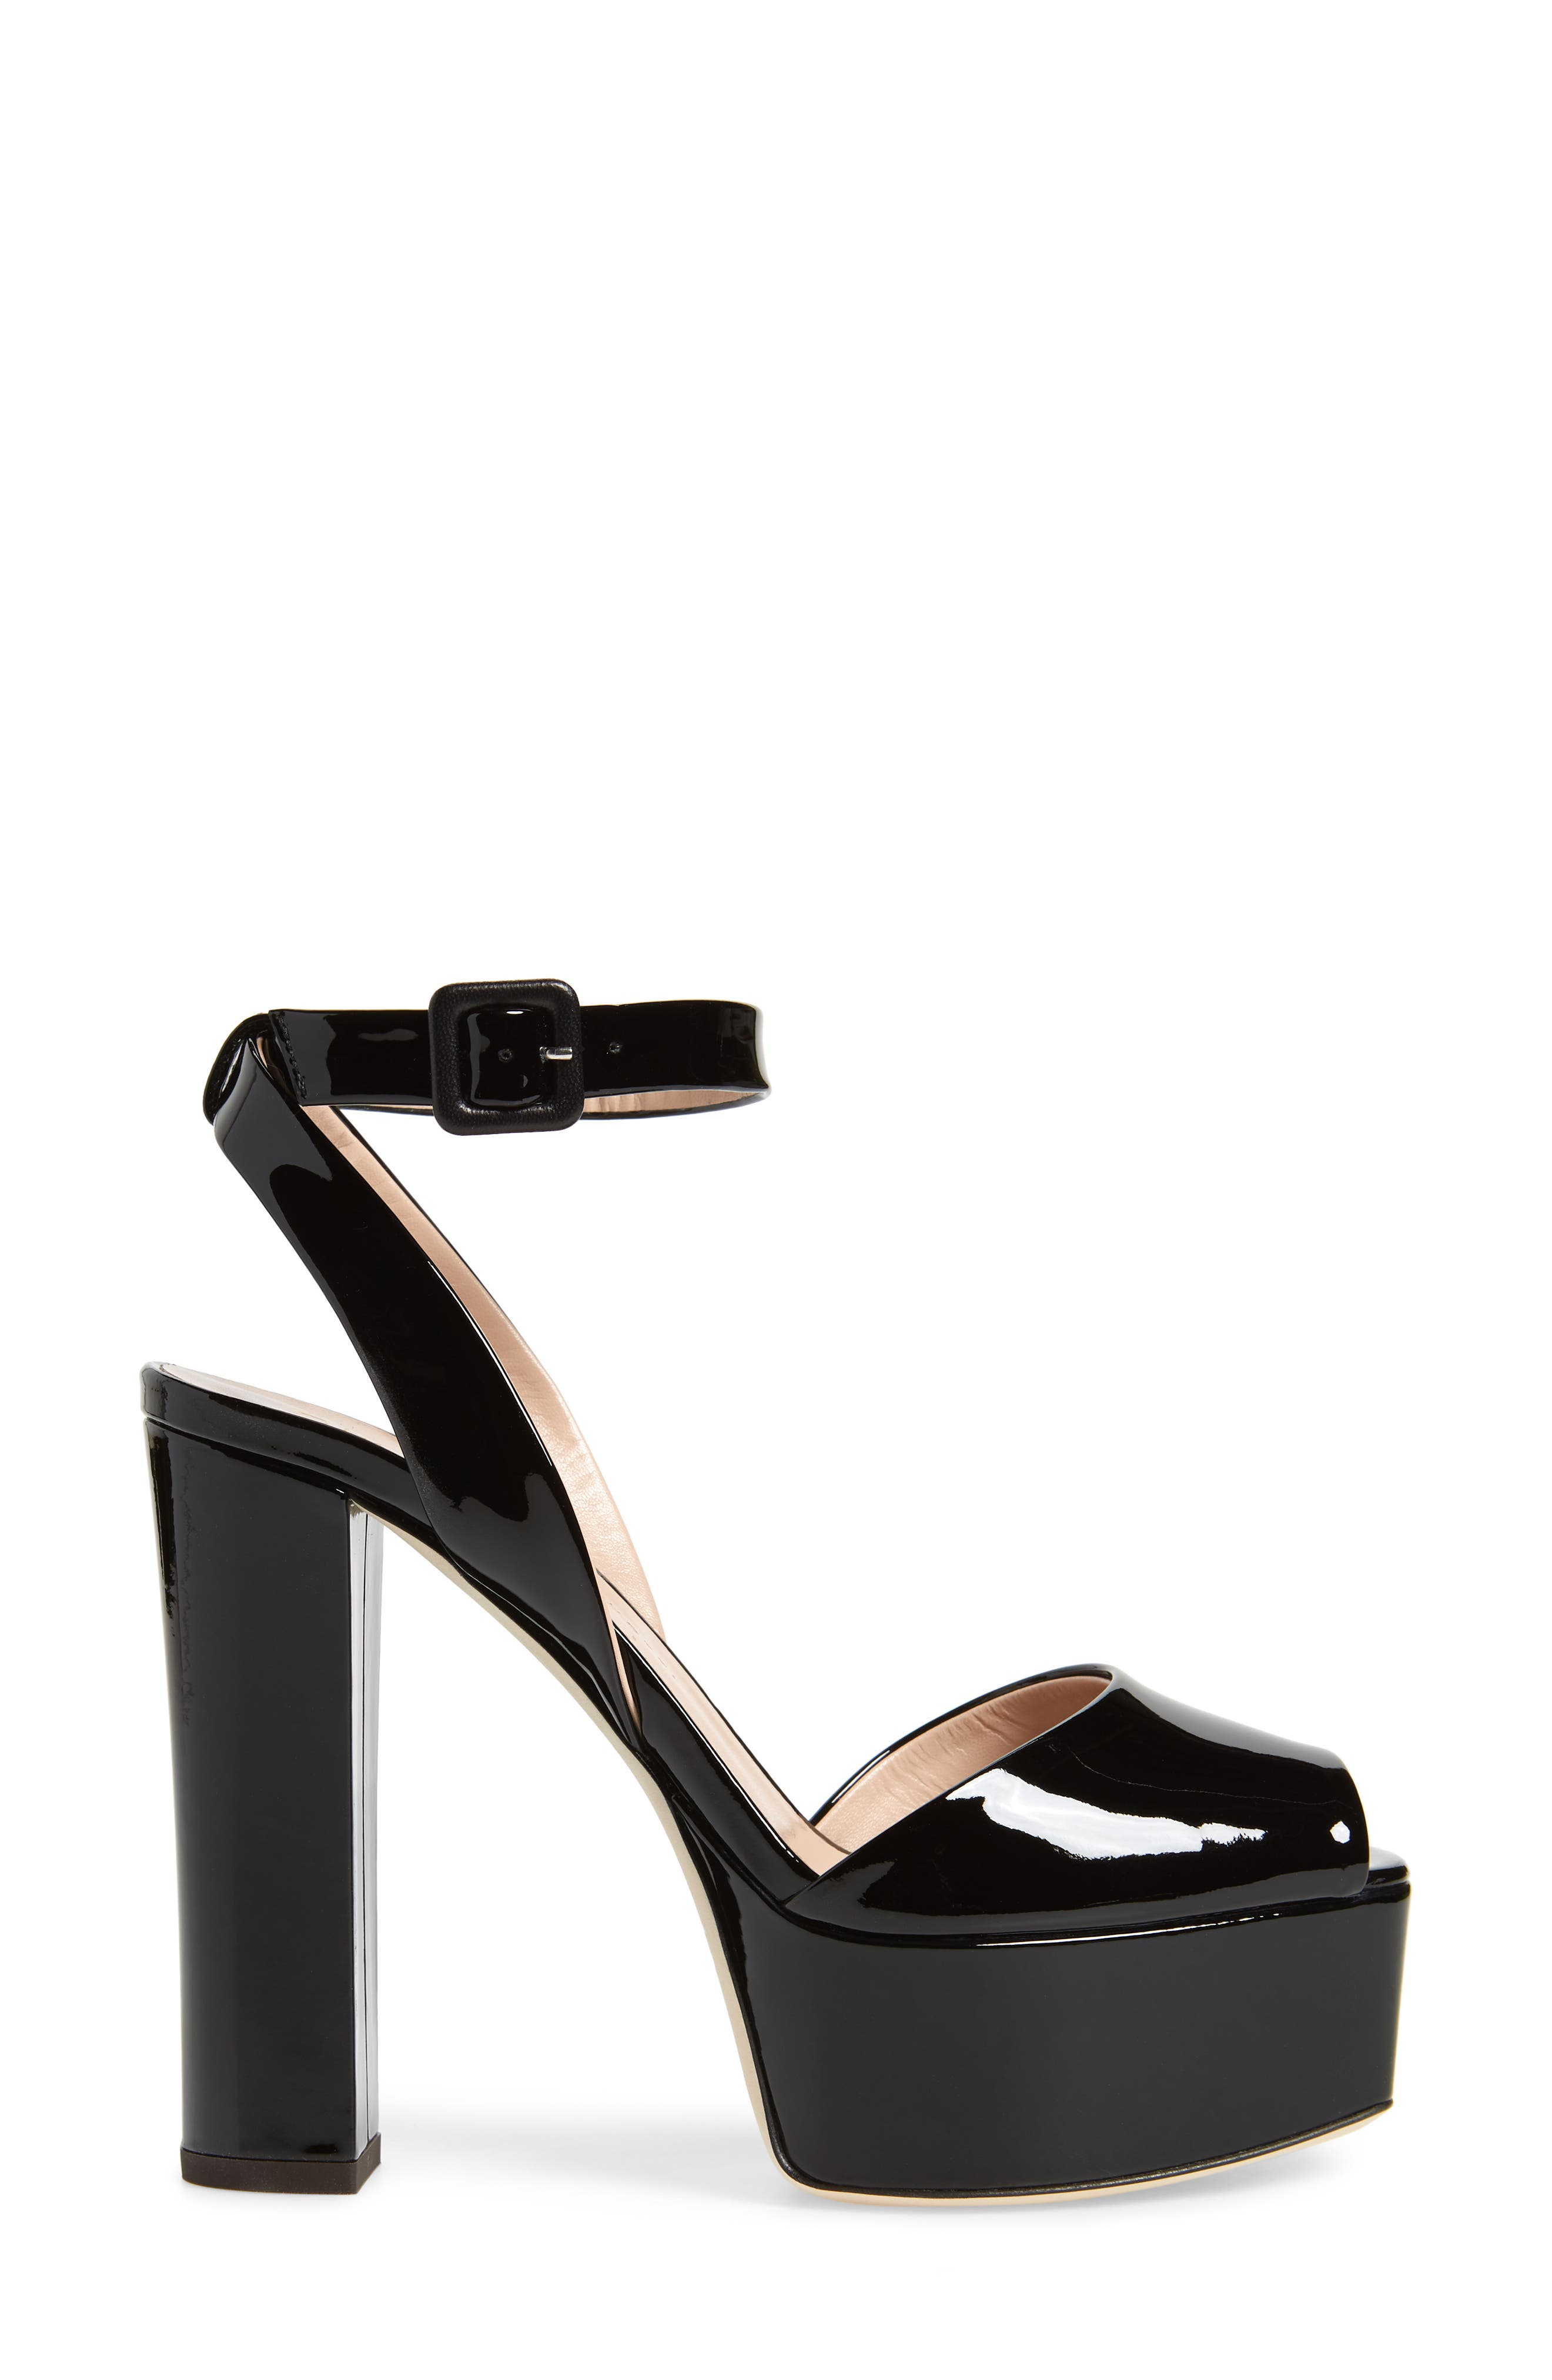 Lavinia Platform Sandal,                             Alternate thumbnail 3, color,                             Black Patent